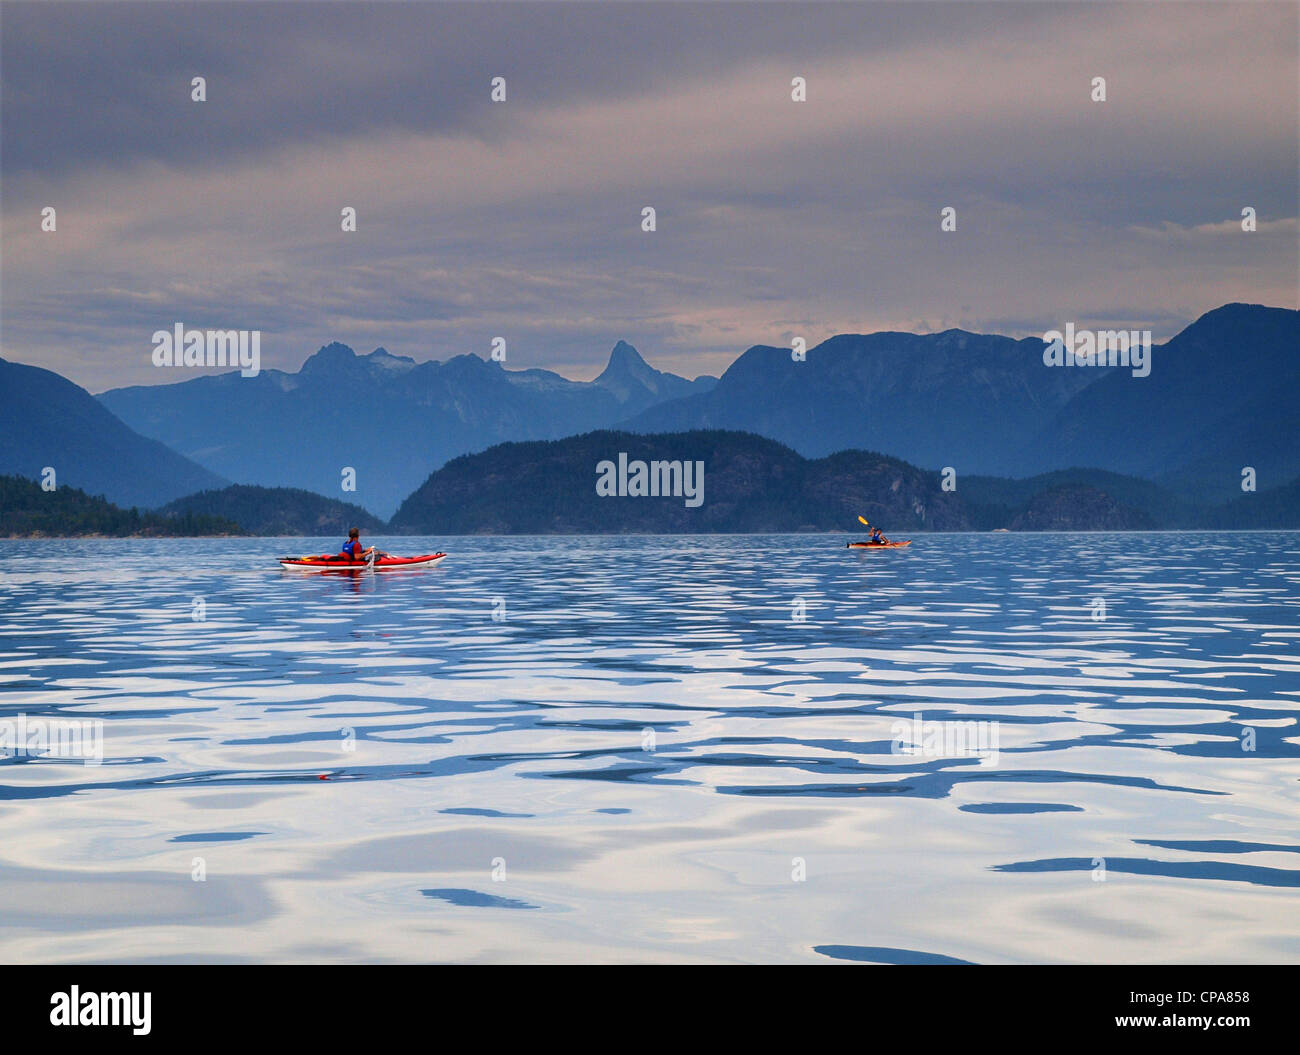 Sea kayaking in Desolation Sound, British Columbia - Stock Image